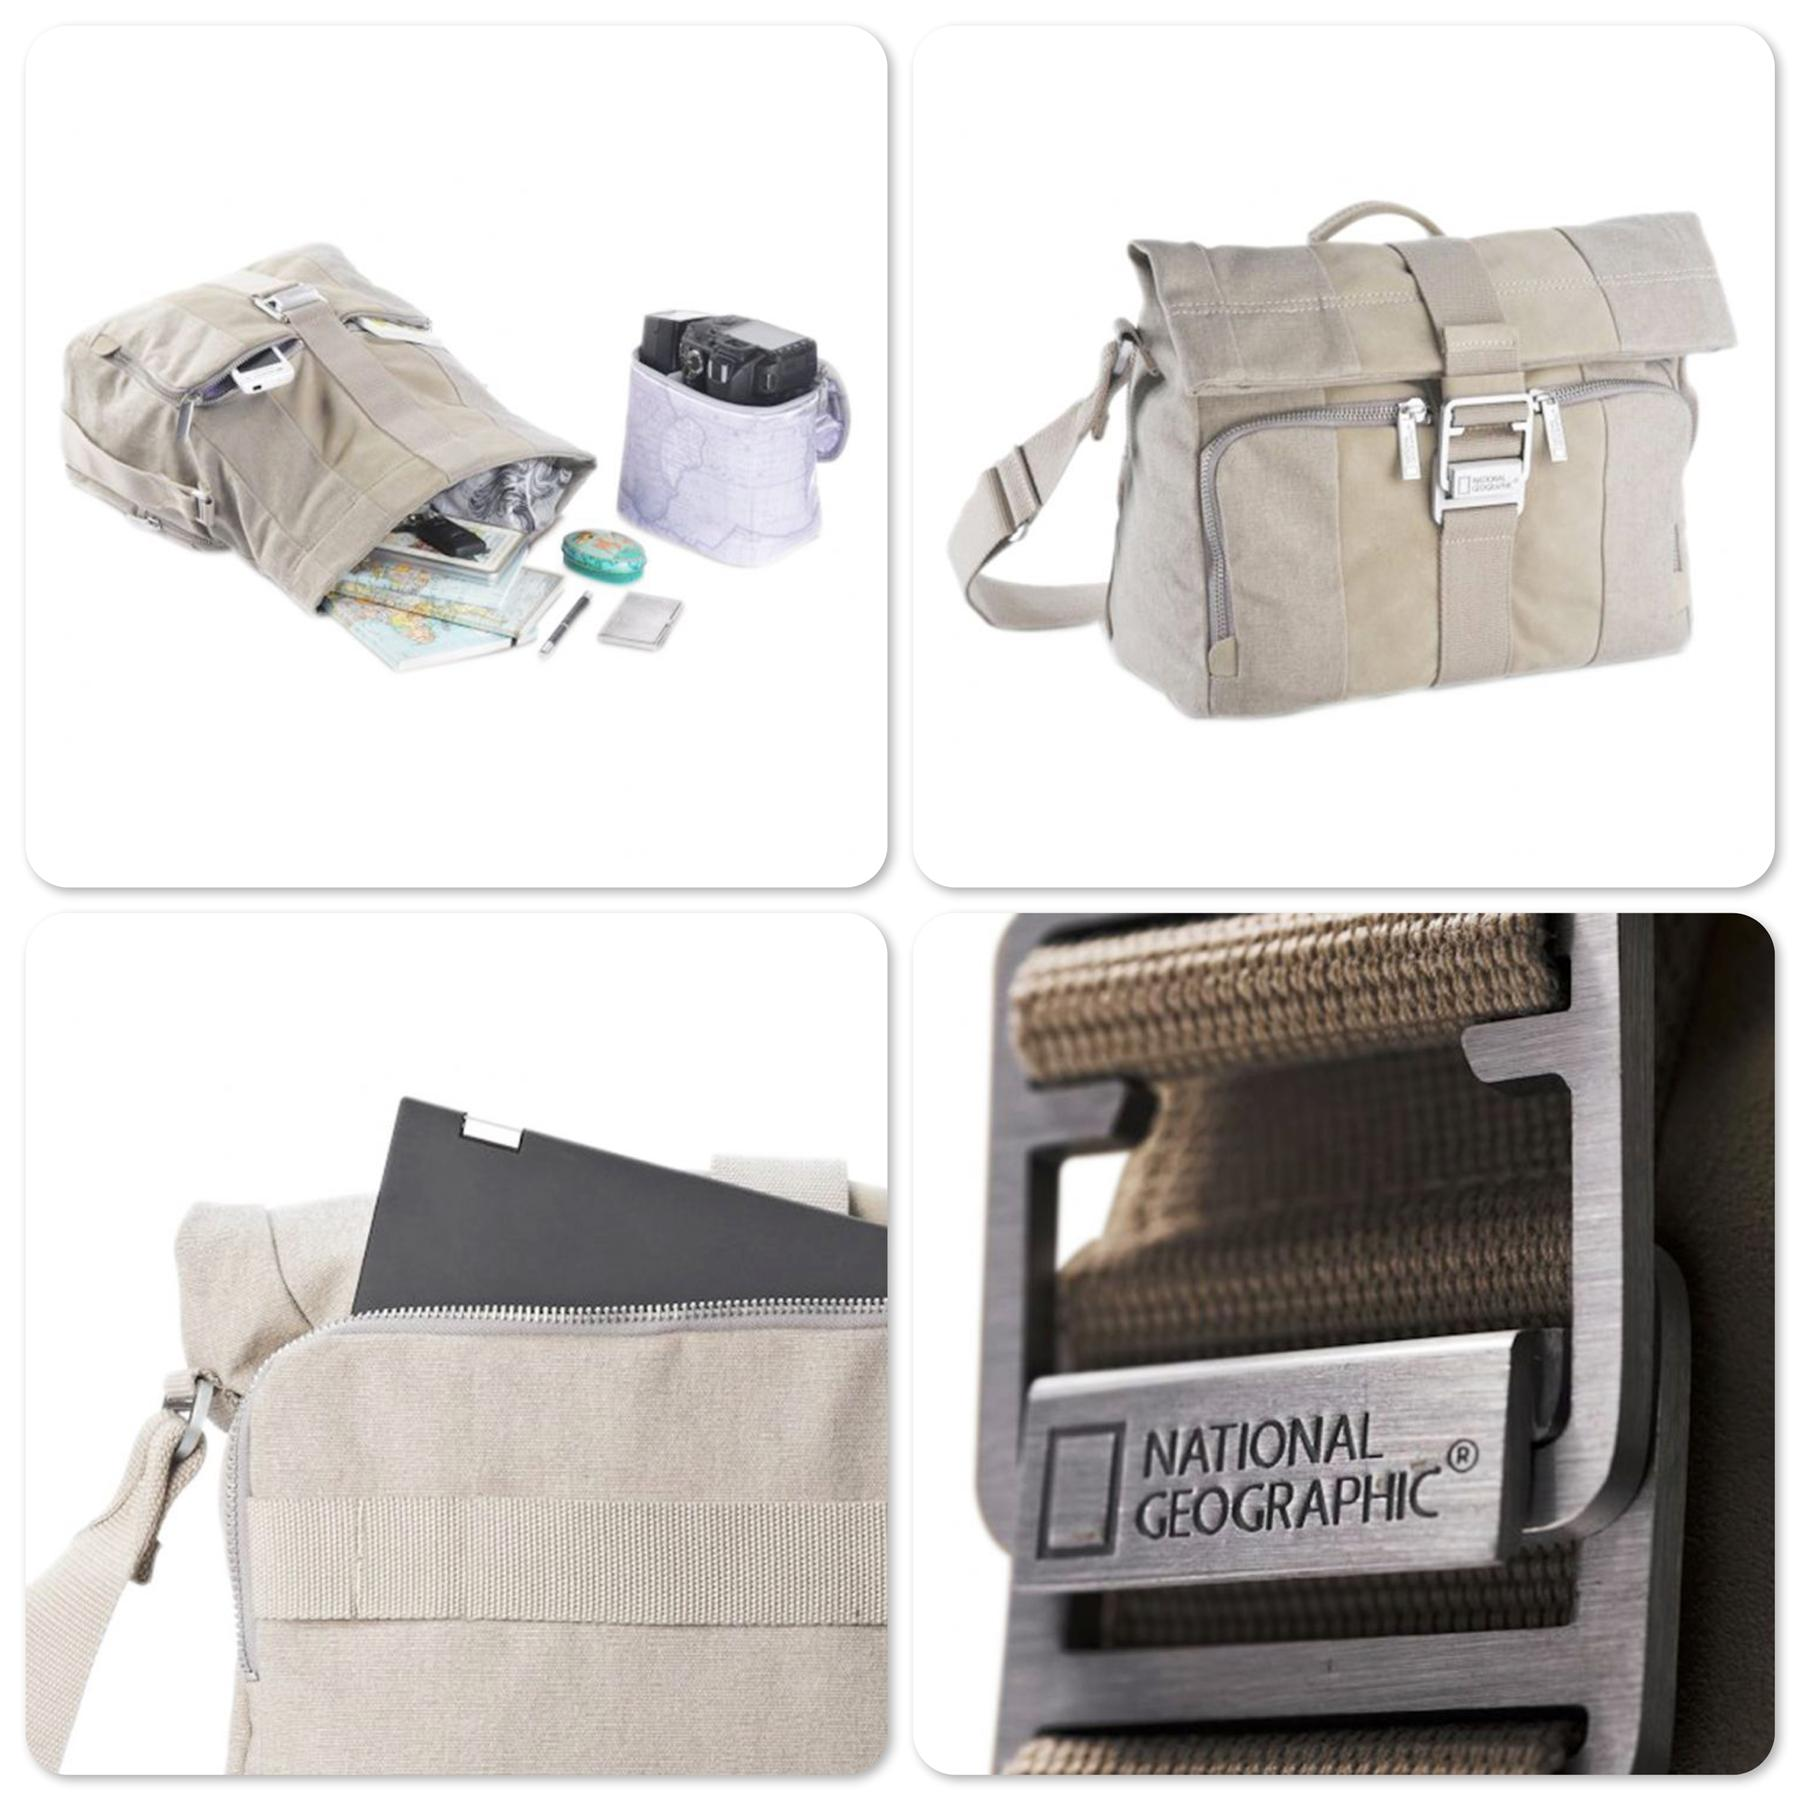 National Geographic NG P2120 Private Collection Midi Messenger Bag